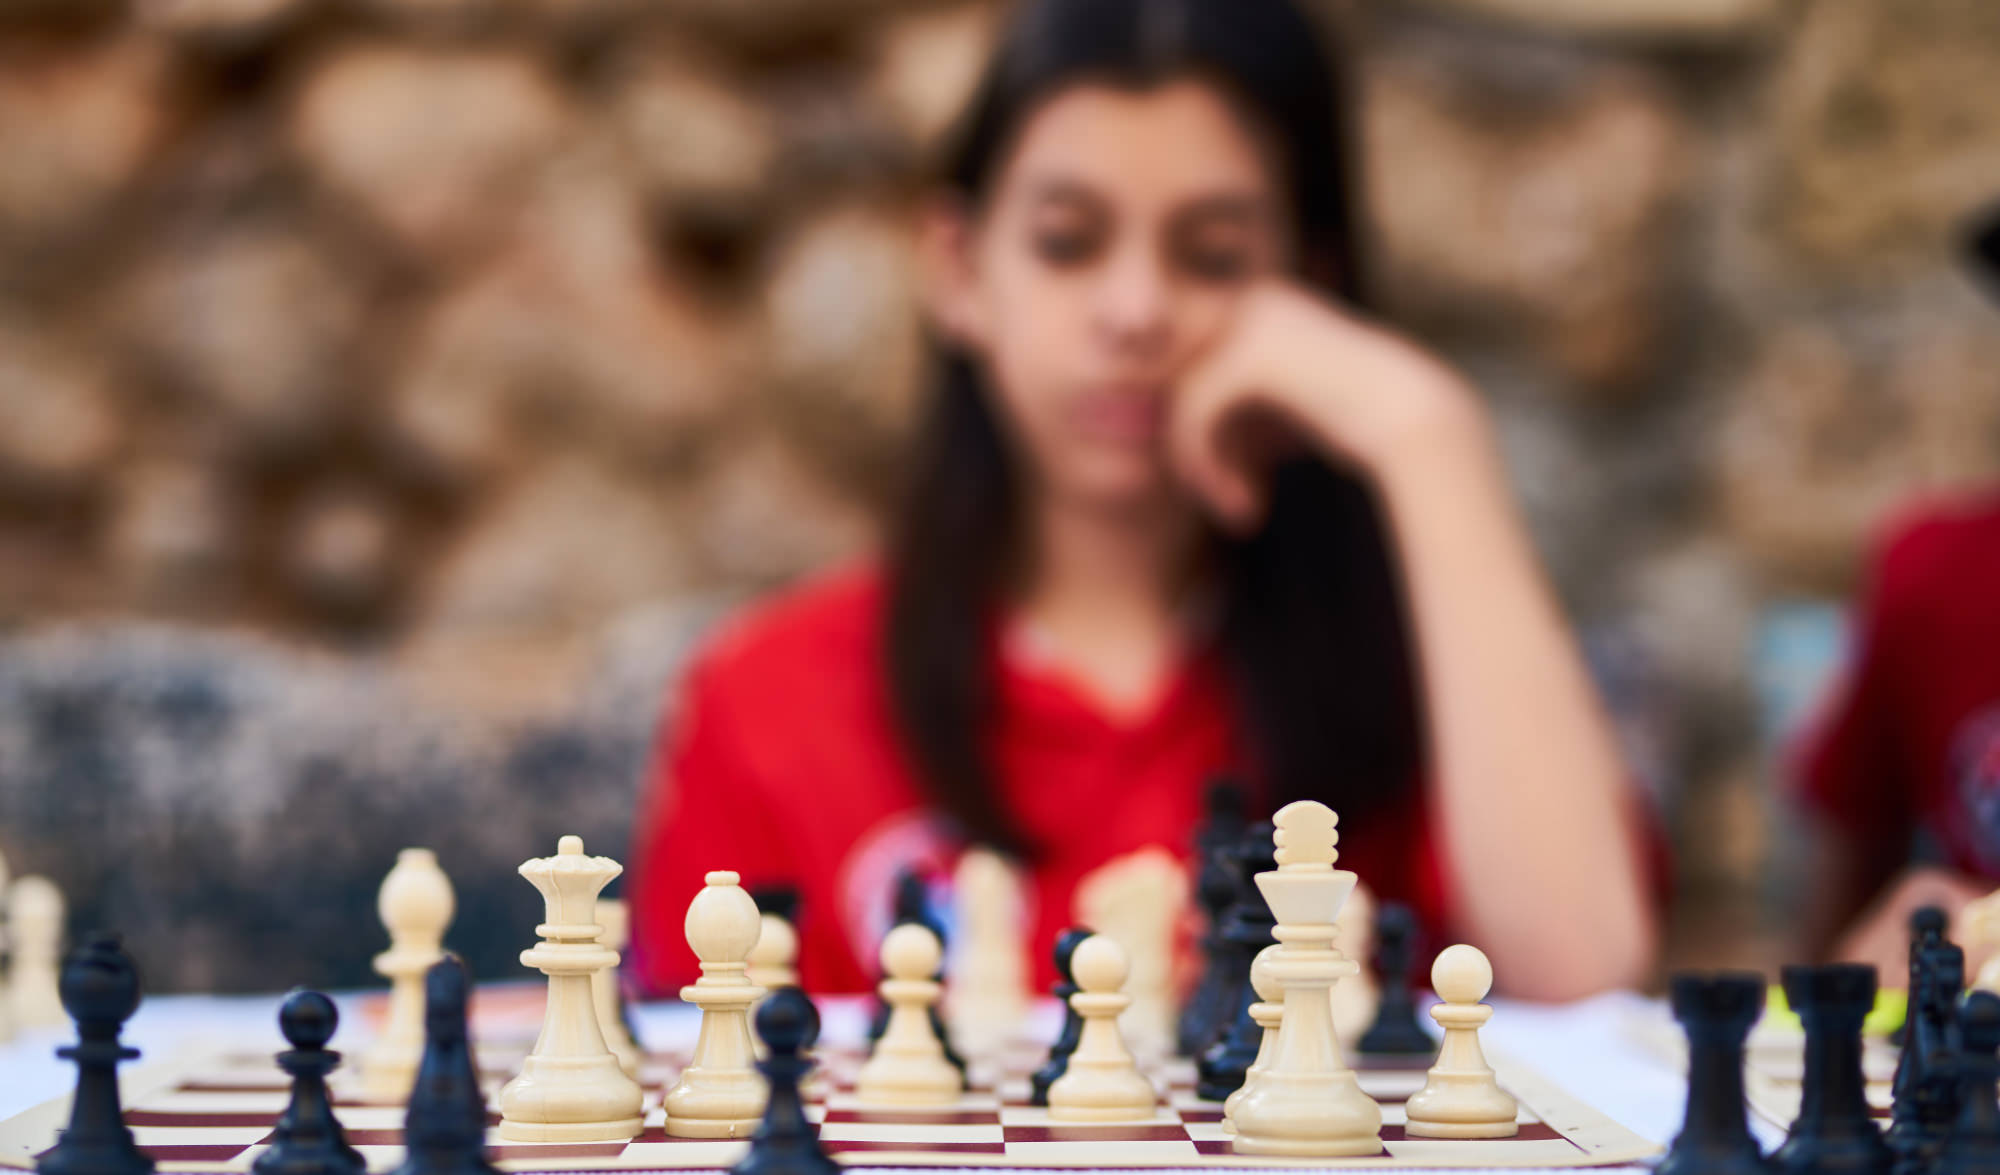 A woman pondering what move to make during a chess game, meant to represent cognition and possible bipolar brain damage.